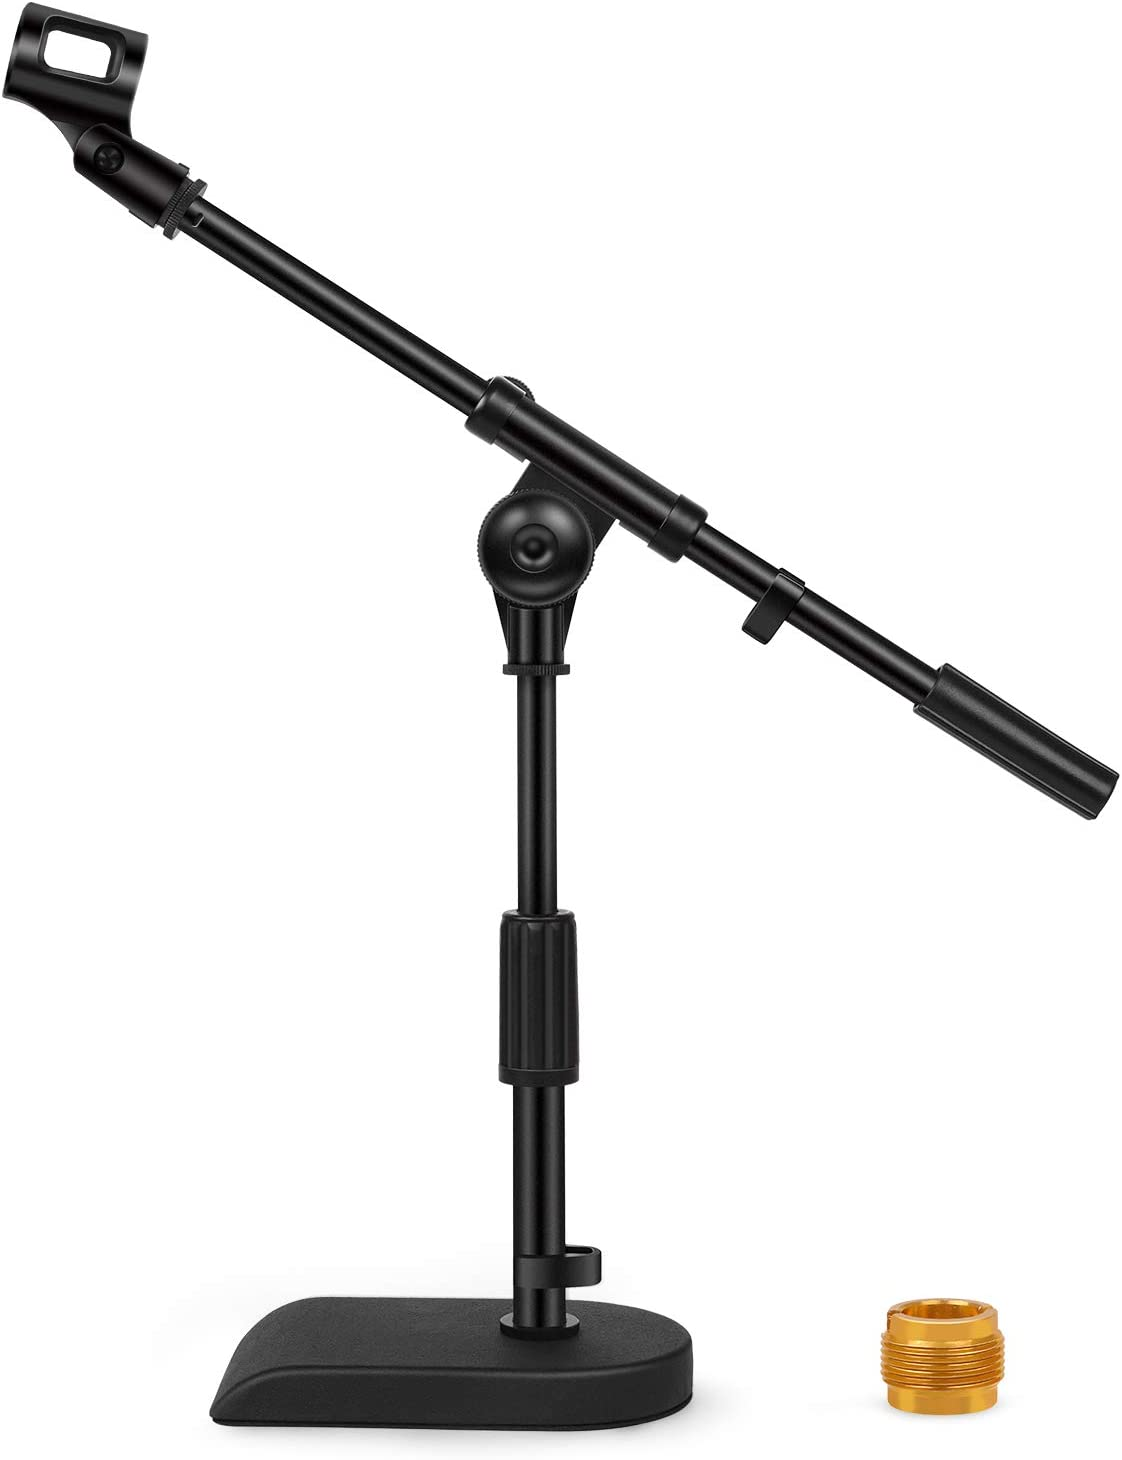 InnoGear Adjustable Desk Microphone Stand, Weighted Base with Soft Grip Twist Clutch, Boom Arm, 3/8